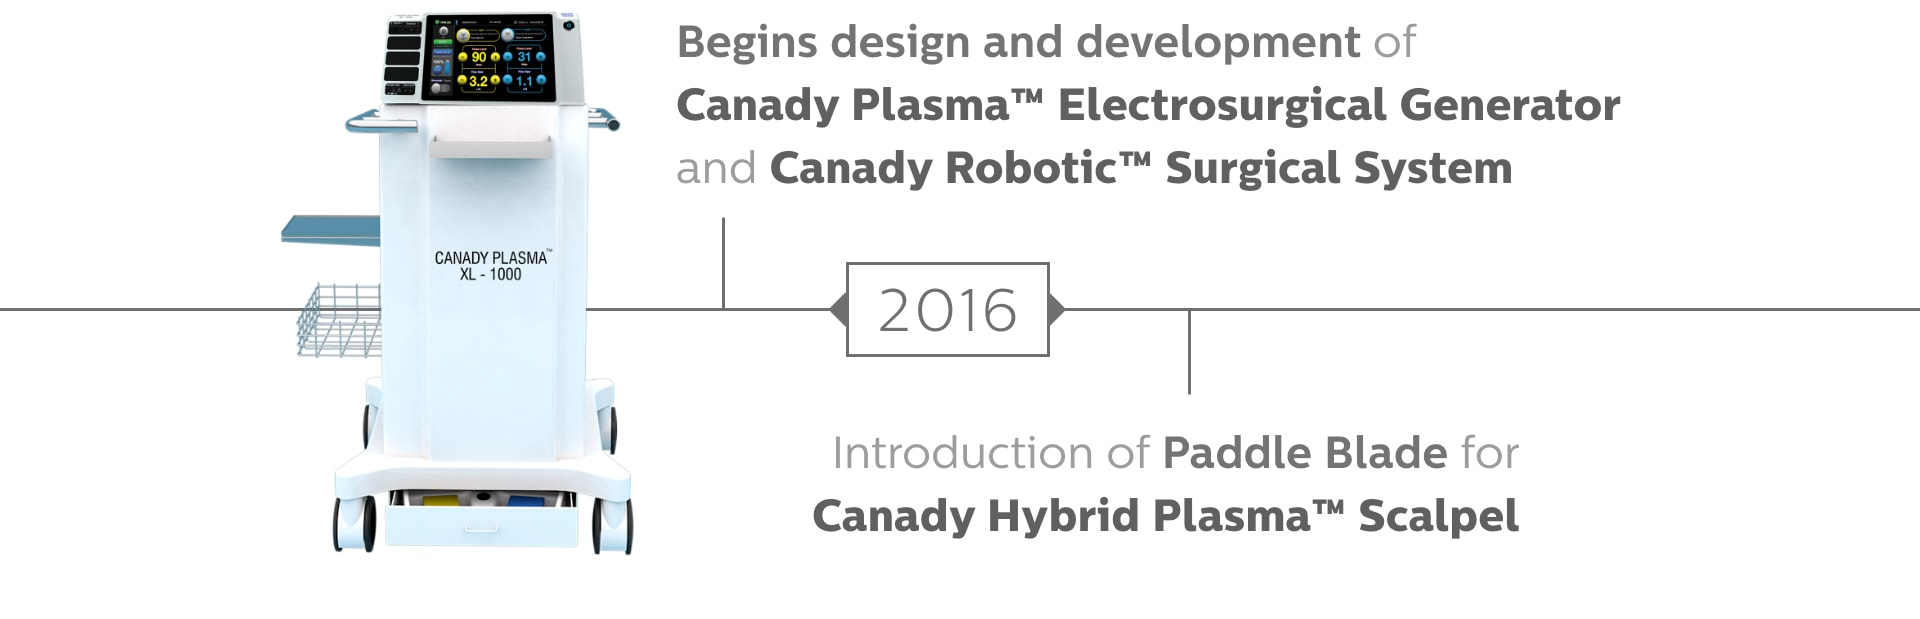 USMI develops new Electrosurgical Generator (ESG), Robotic Surgical System and Hybrid Plasma Scalpel accessories